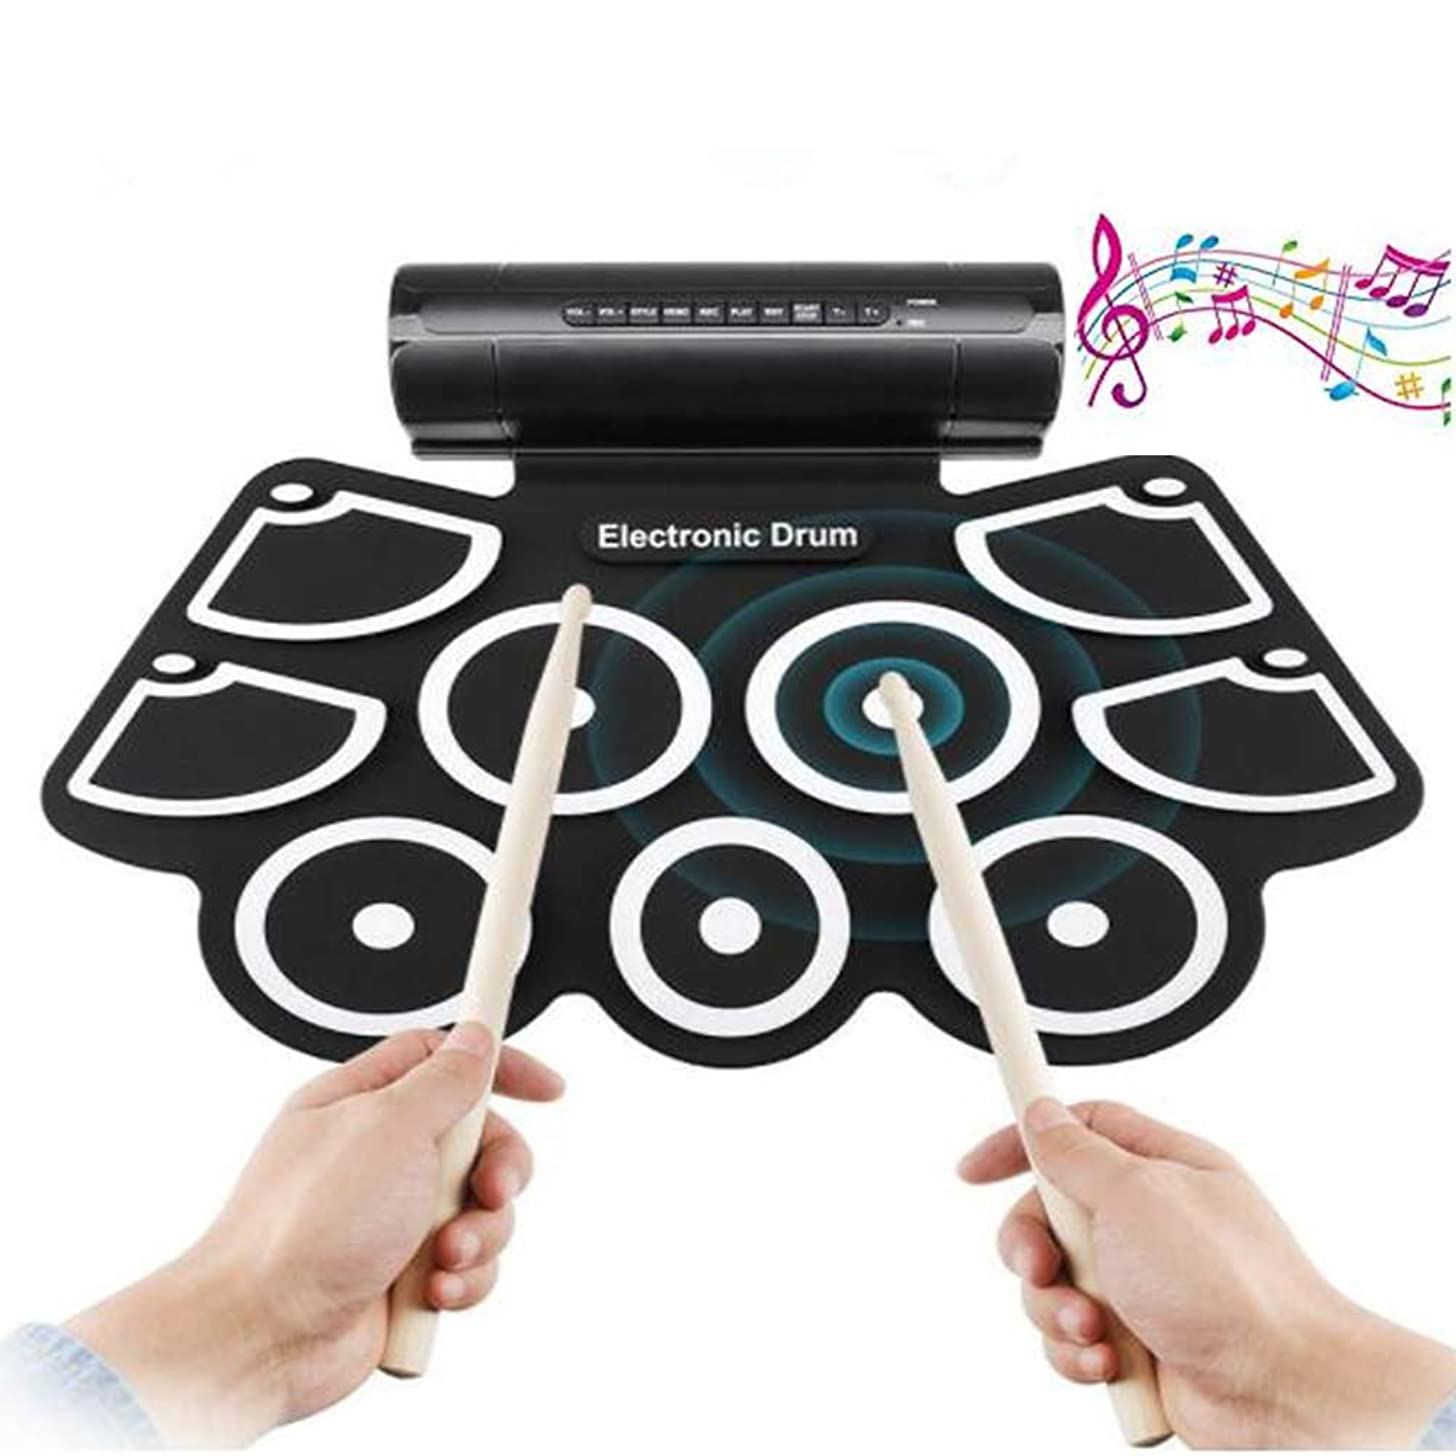 Electronic Drum Set, 9 Pads Electric Drum Set with Headphone Jack, Built in Speaker, Drum Stick, Foot Pedals & MP3 Headphone Input Best Gift for Christmas Holiday Birthday